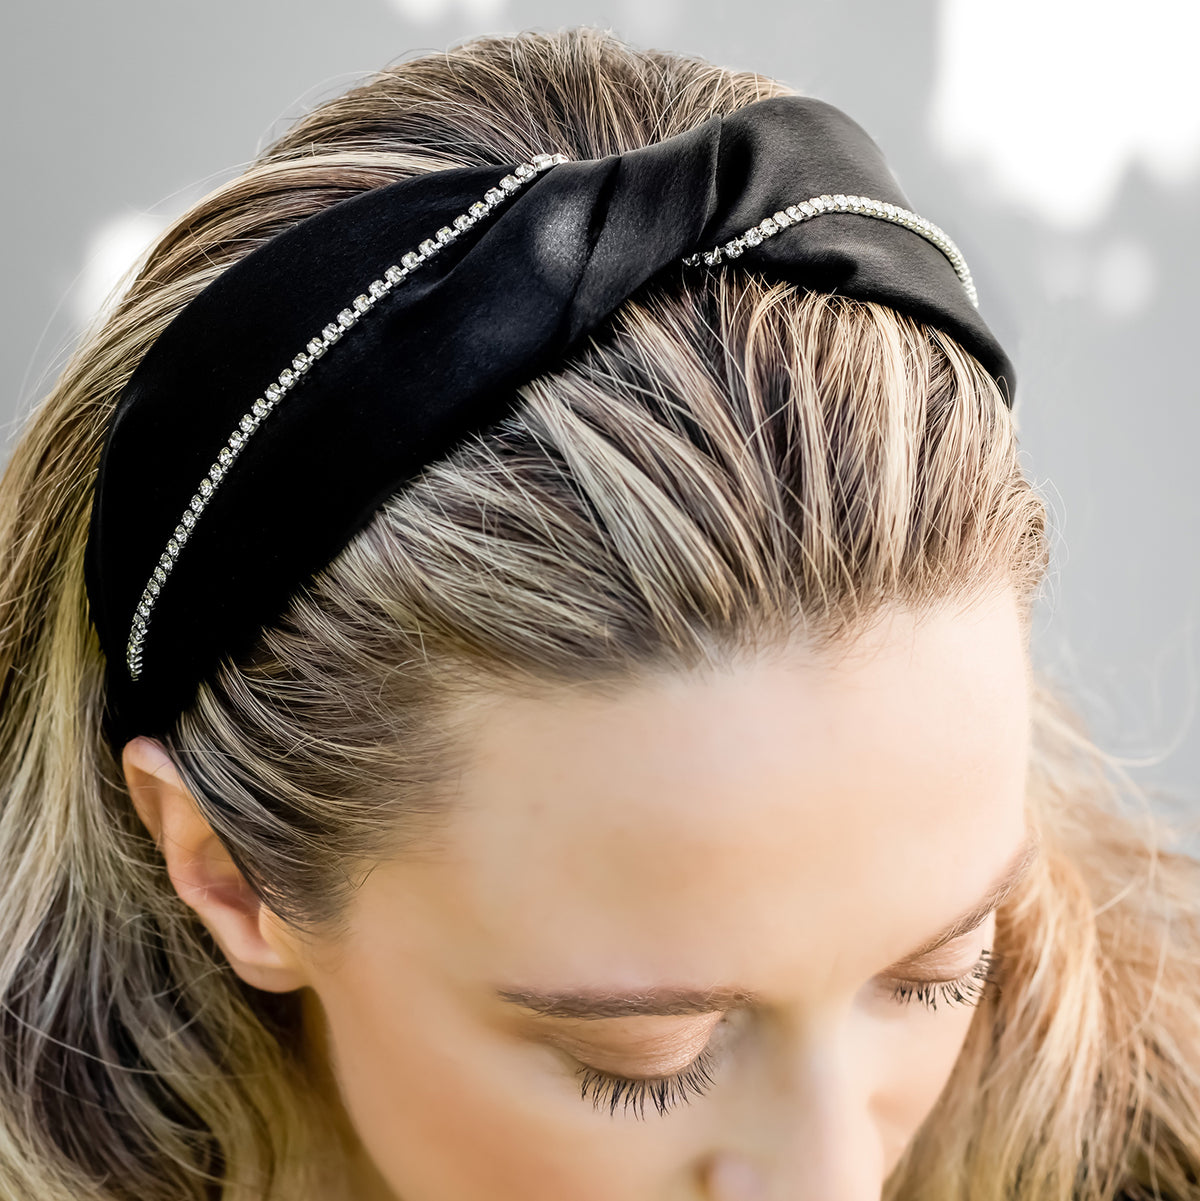 Headbands by IDALIA - Bridget - Crystal Trim